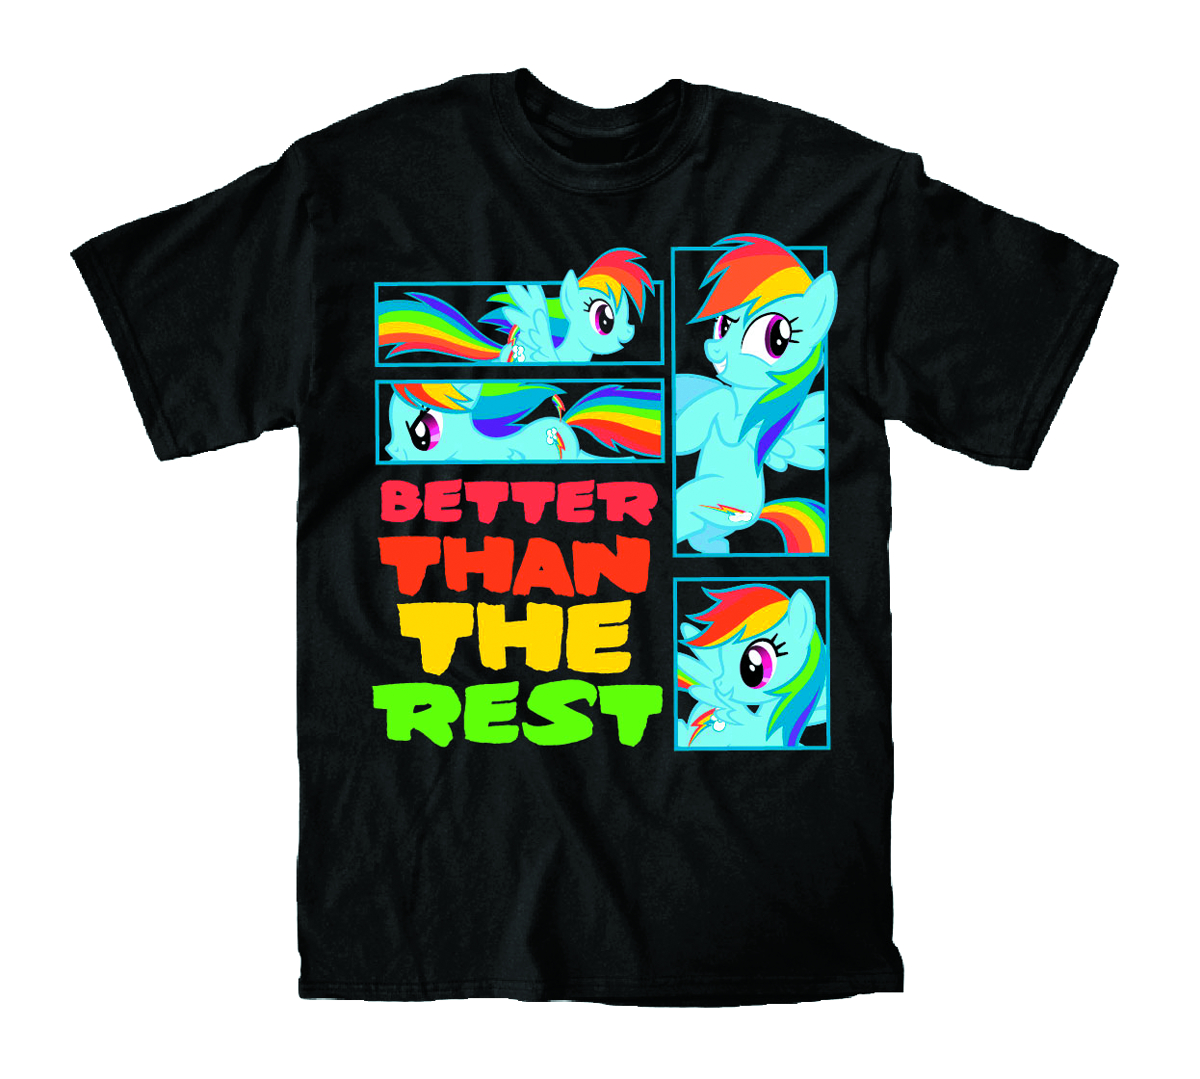 MY LITTLE PONY BETTER THAN THE REST BLK T/S XXL